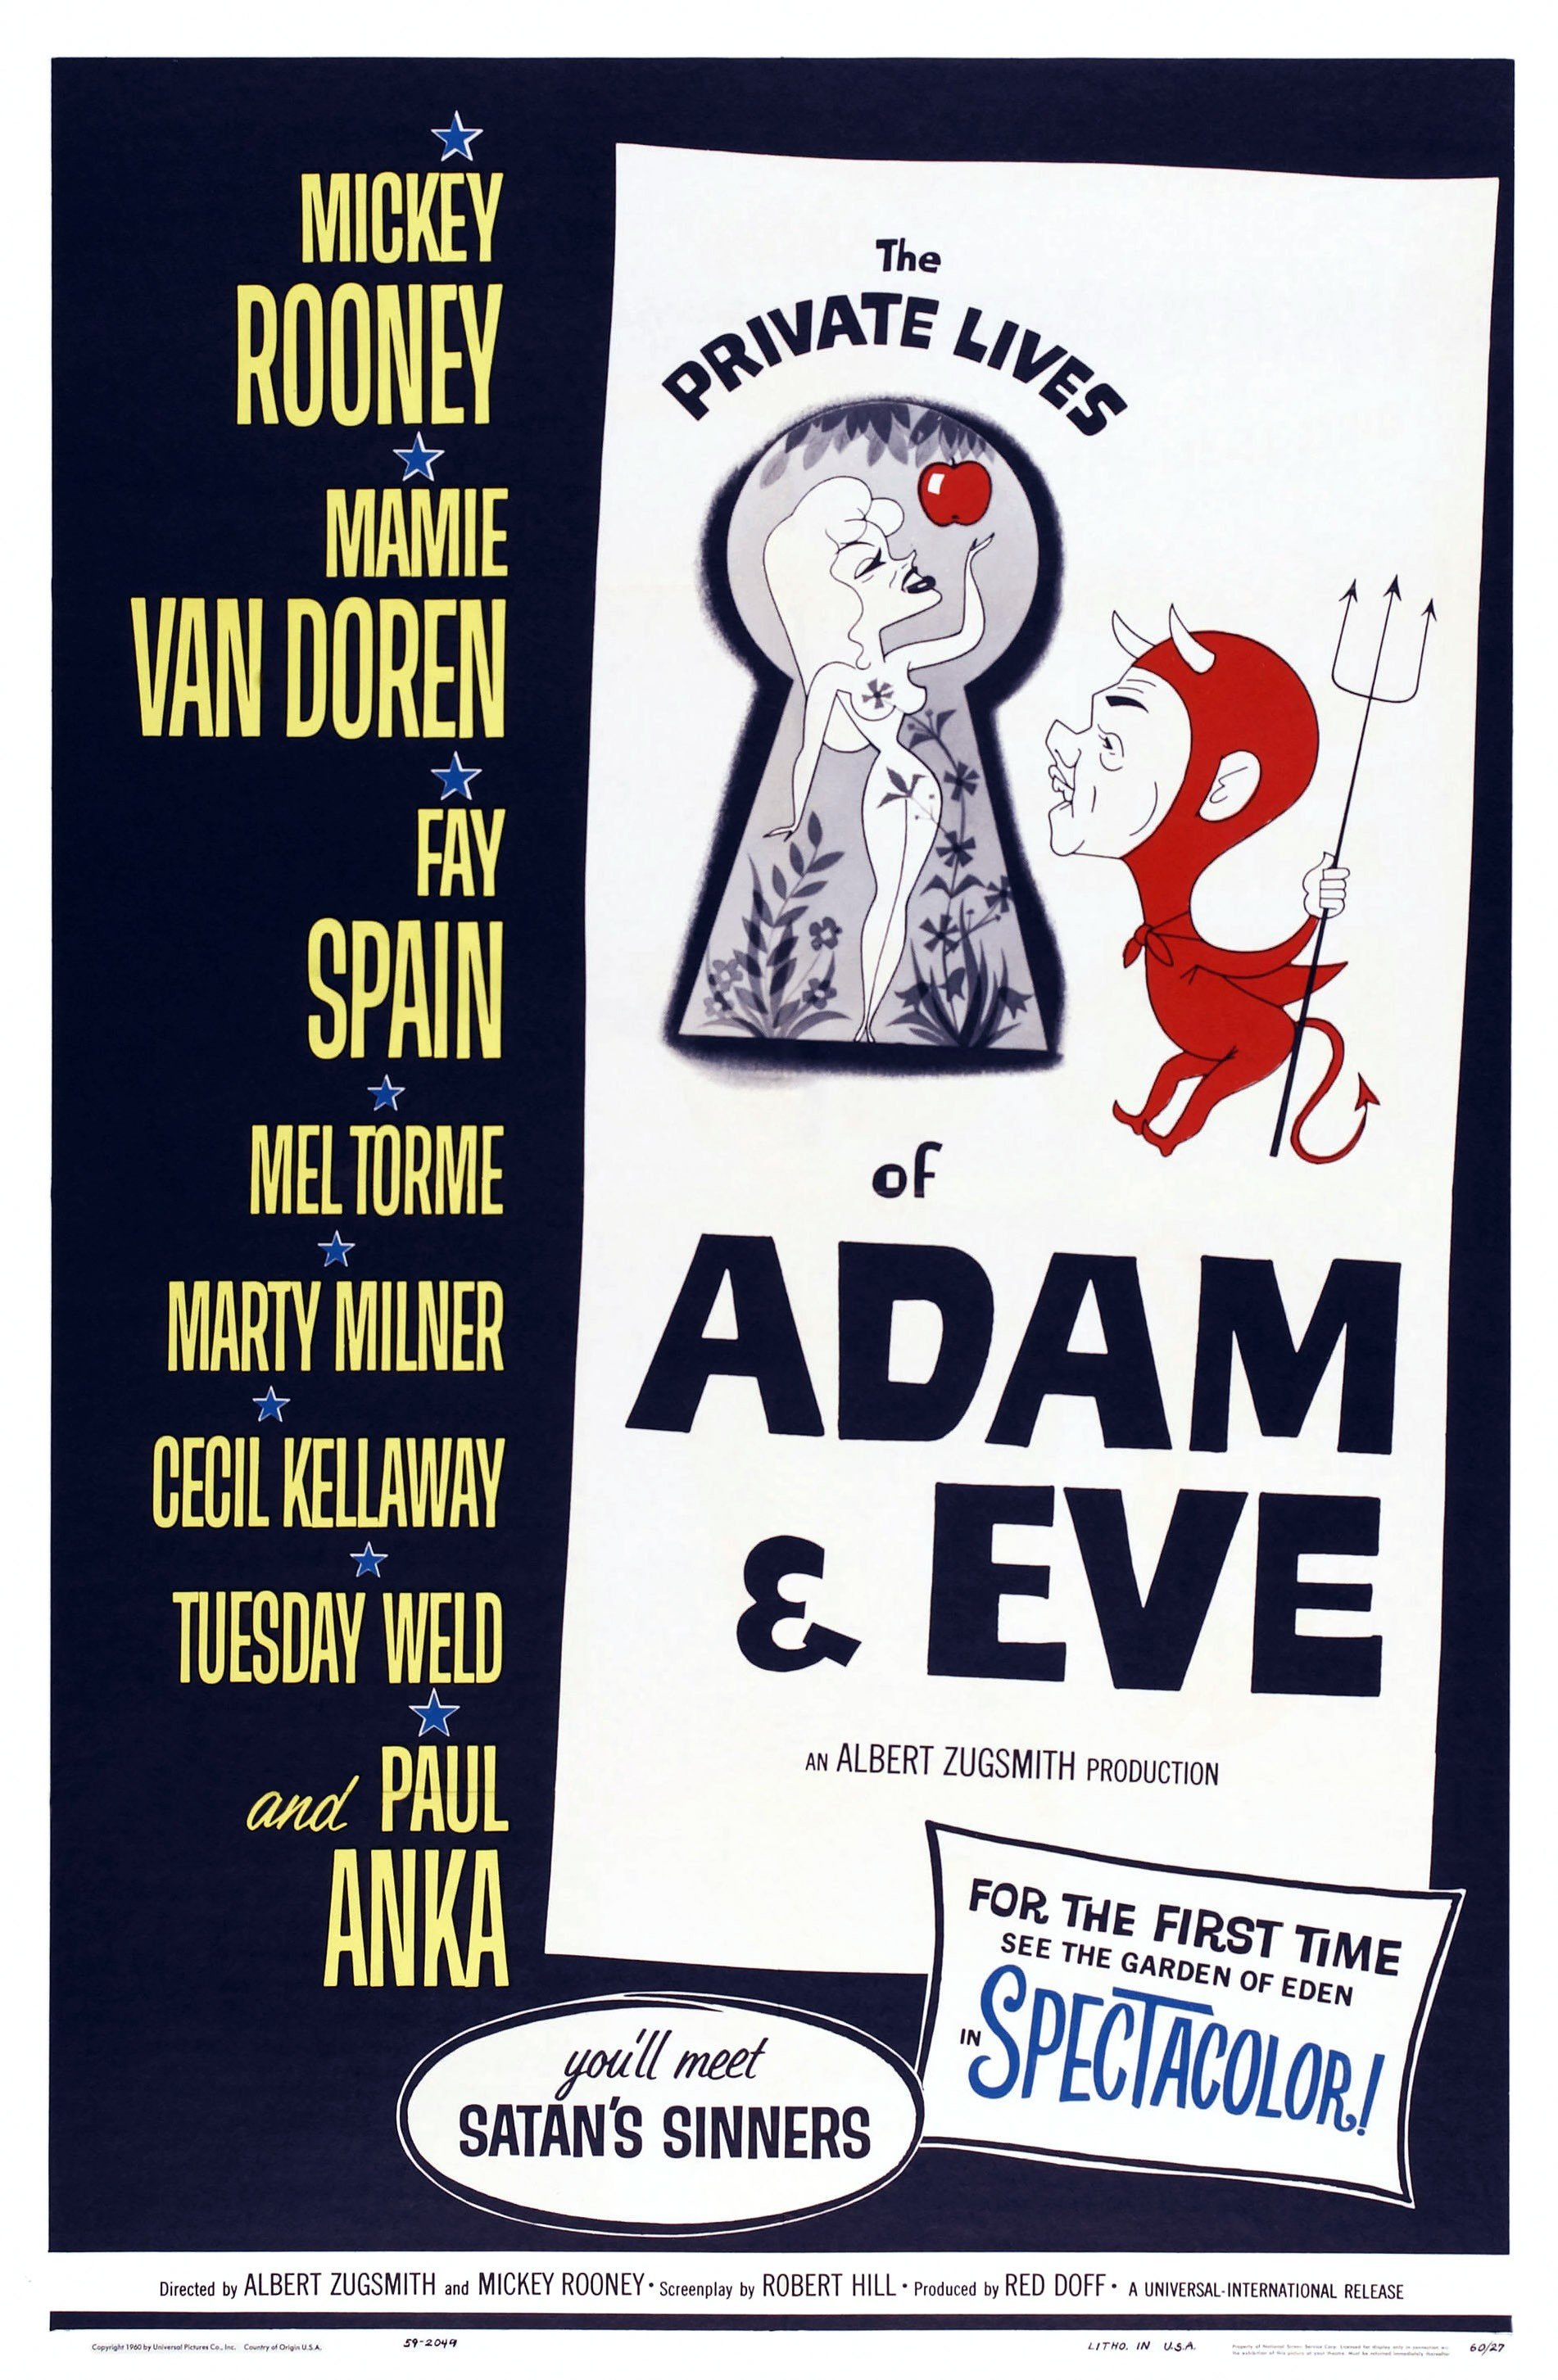 """The poster for """"The Private Lives Of Adam And Eve"""", another film Nancy Bacon starred in, 1960 